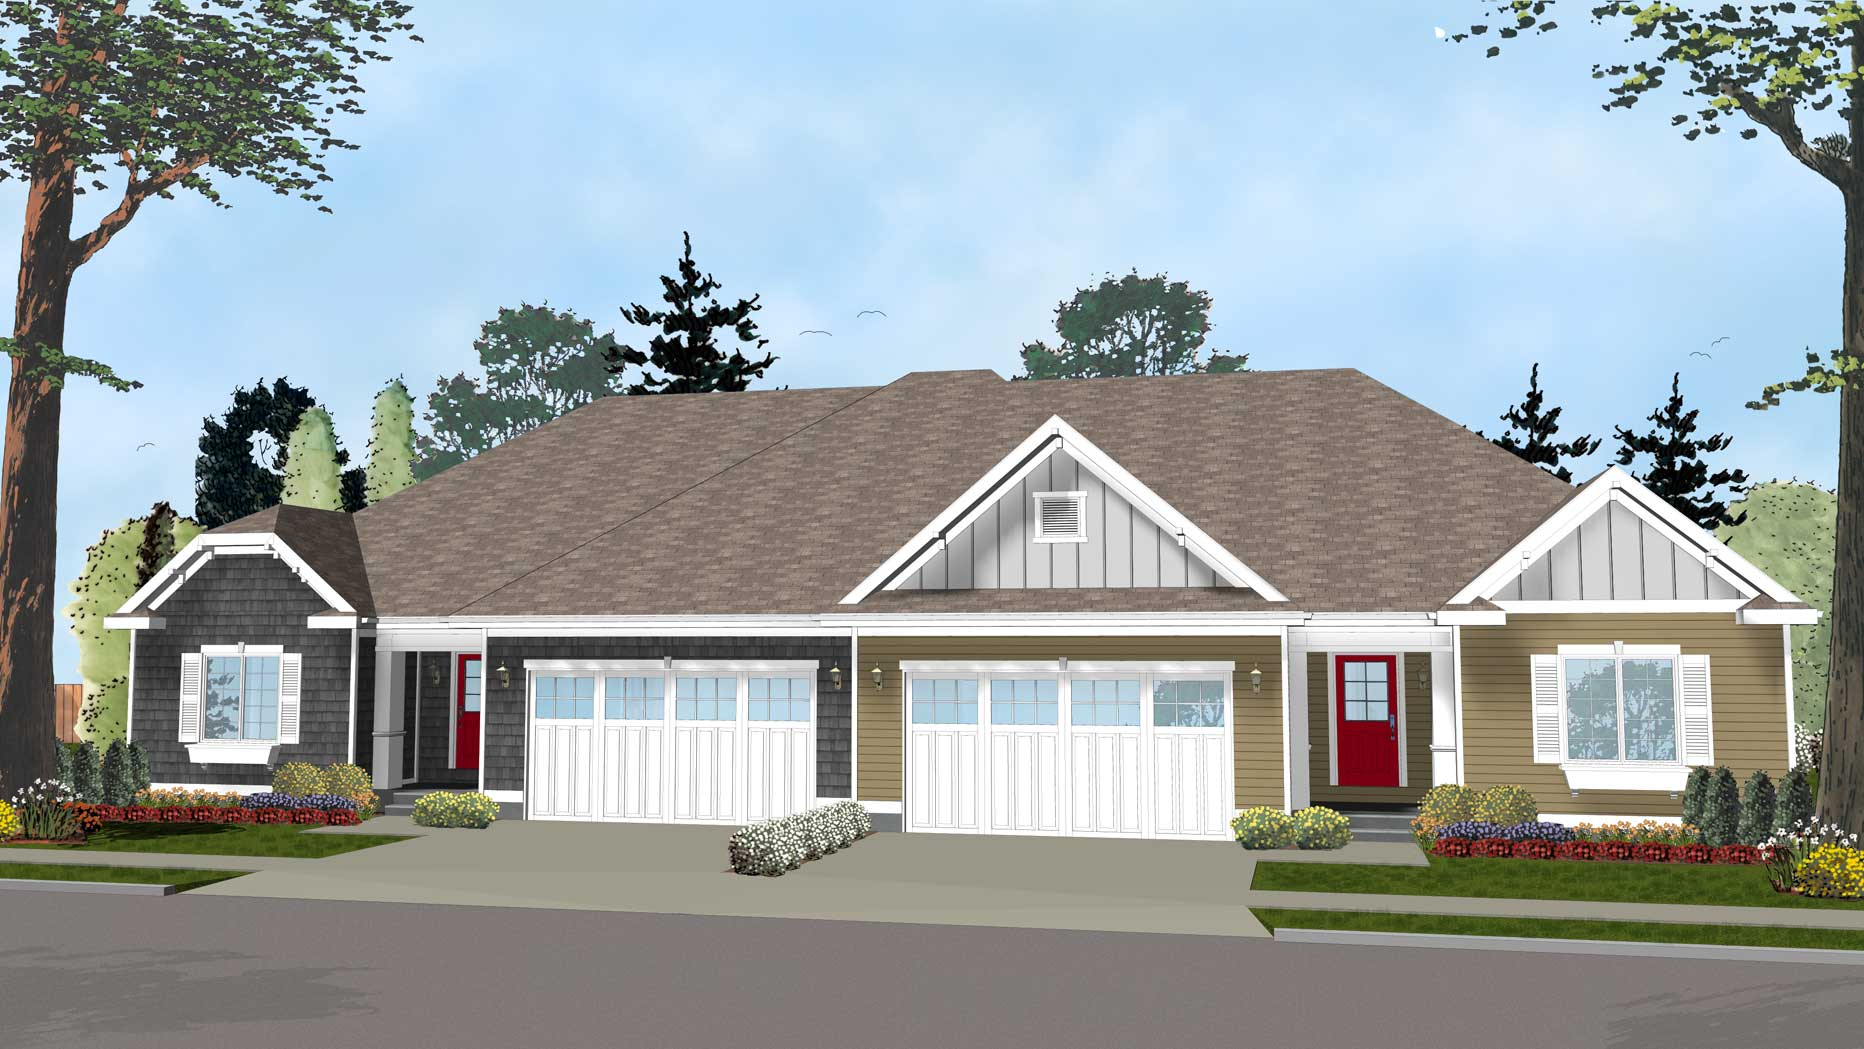 Easy to build duplex house plan 62562dj architectural for Cost to build a duplex house